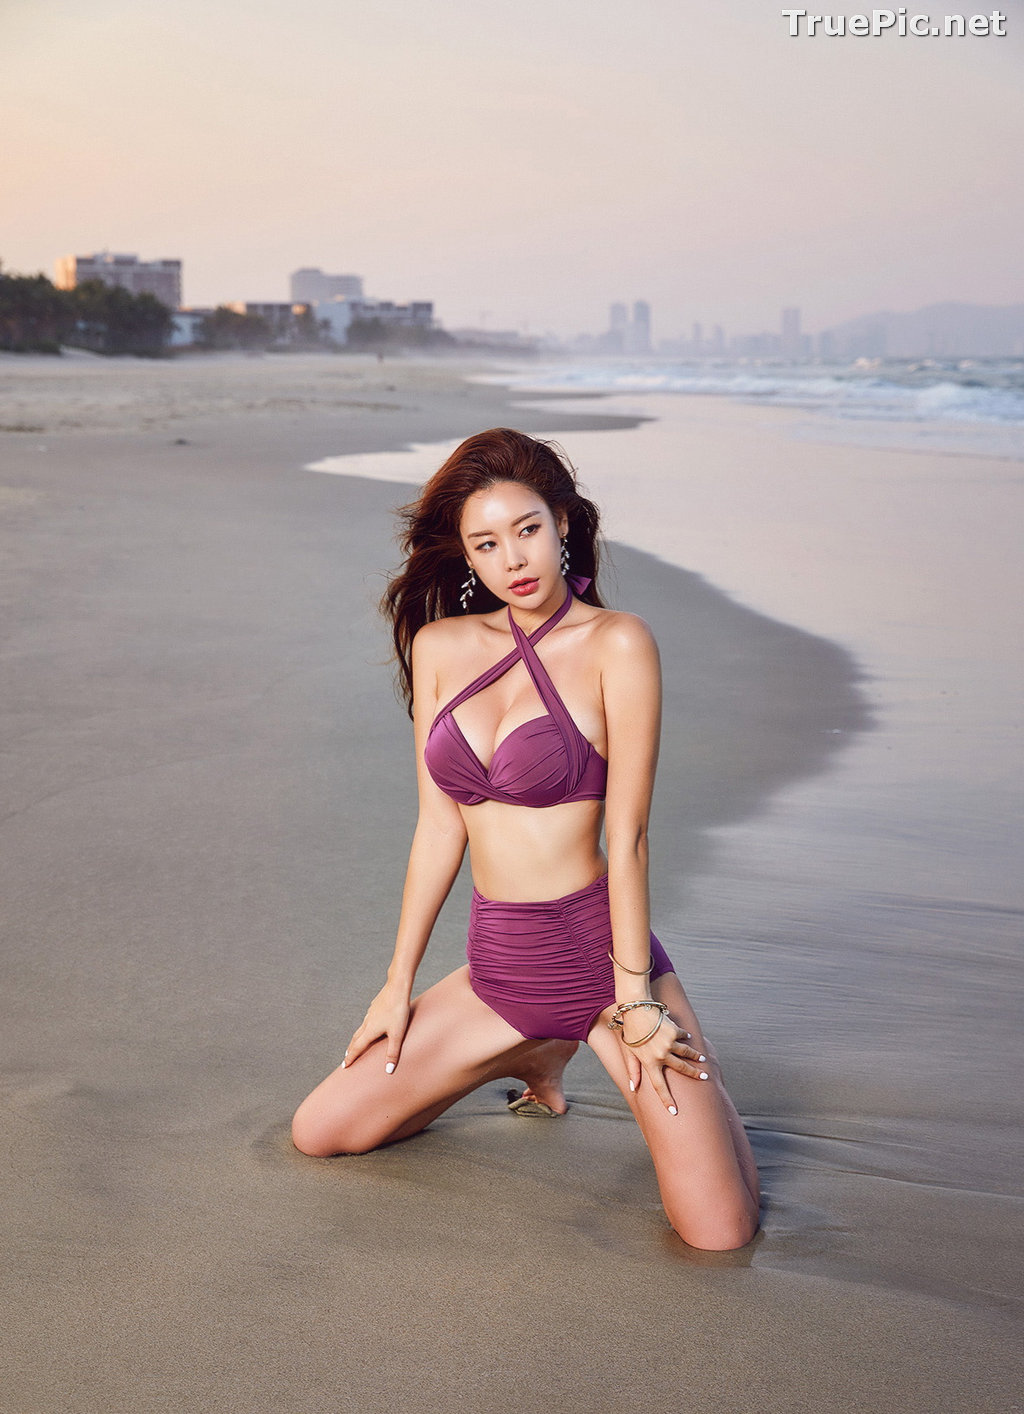 Image Park Da Hyun - Korean Fashion Model - RoseMellow Purple Bikini - TruePic.net - Picture-4